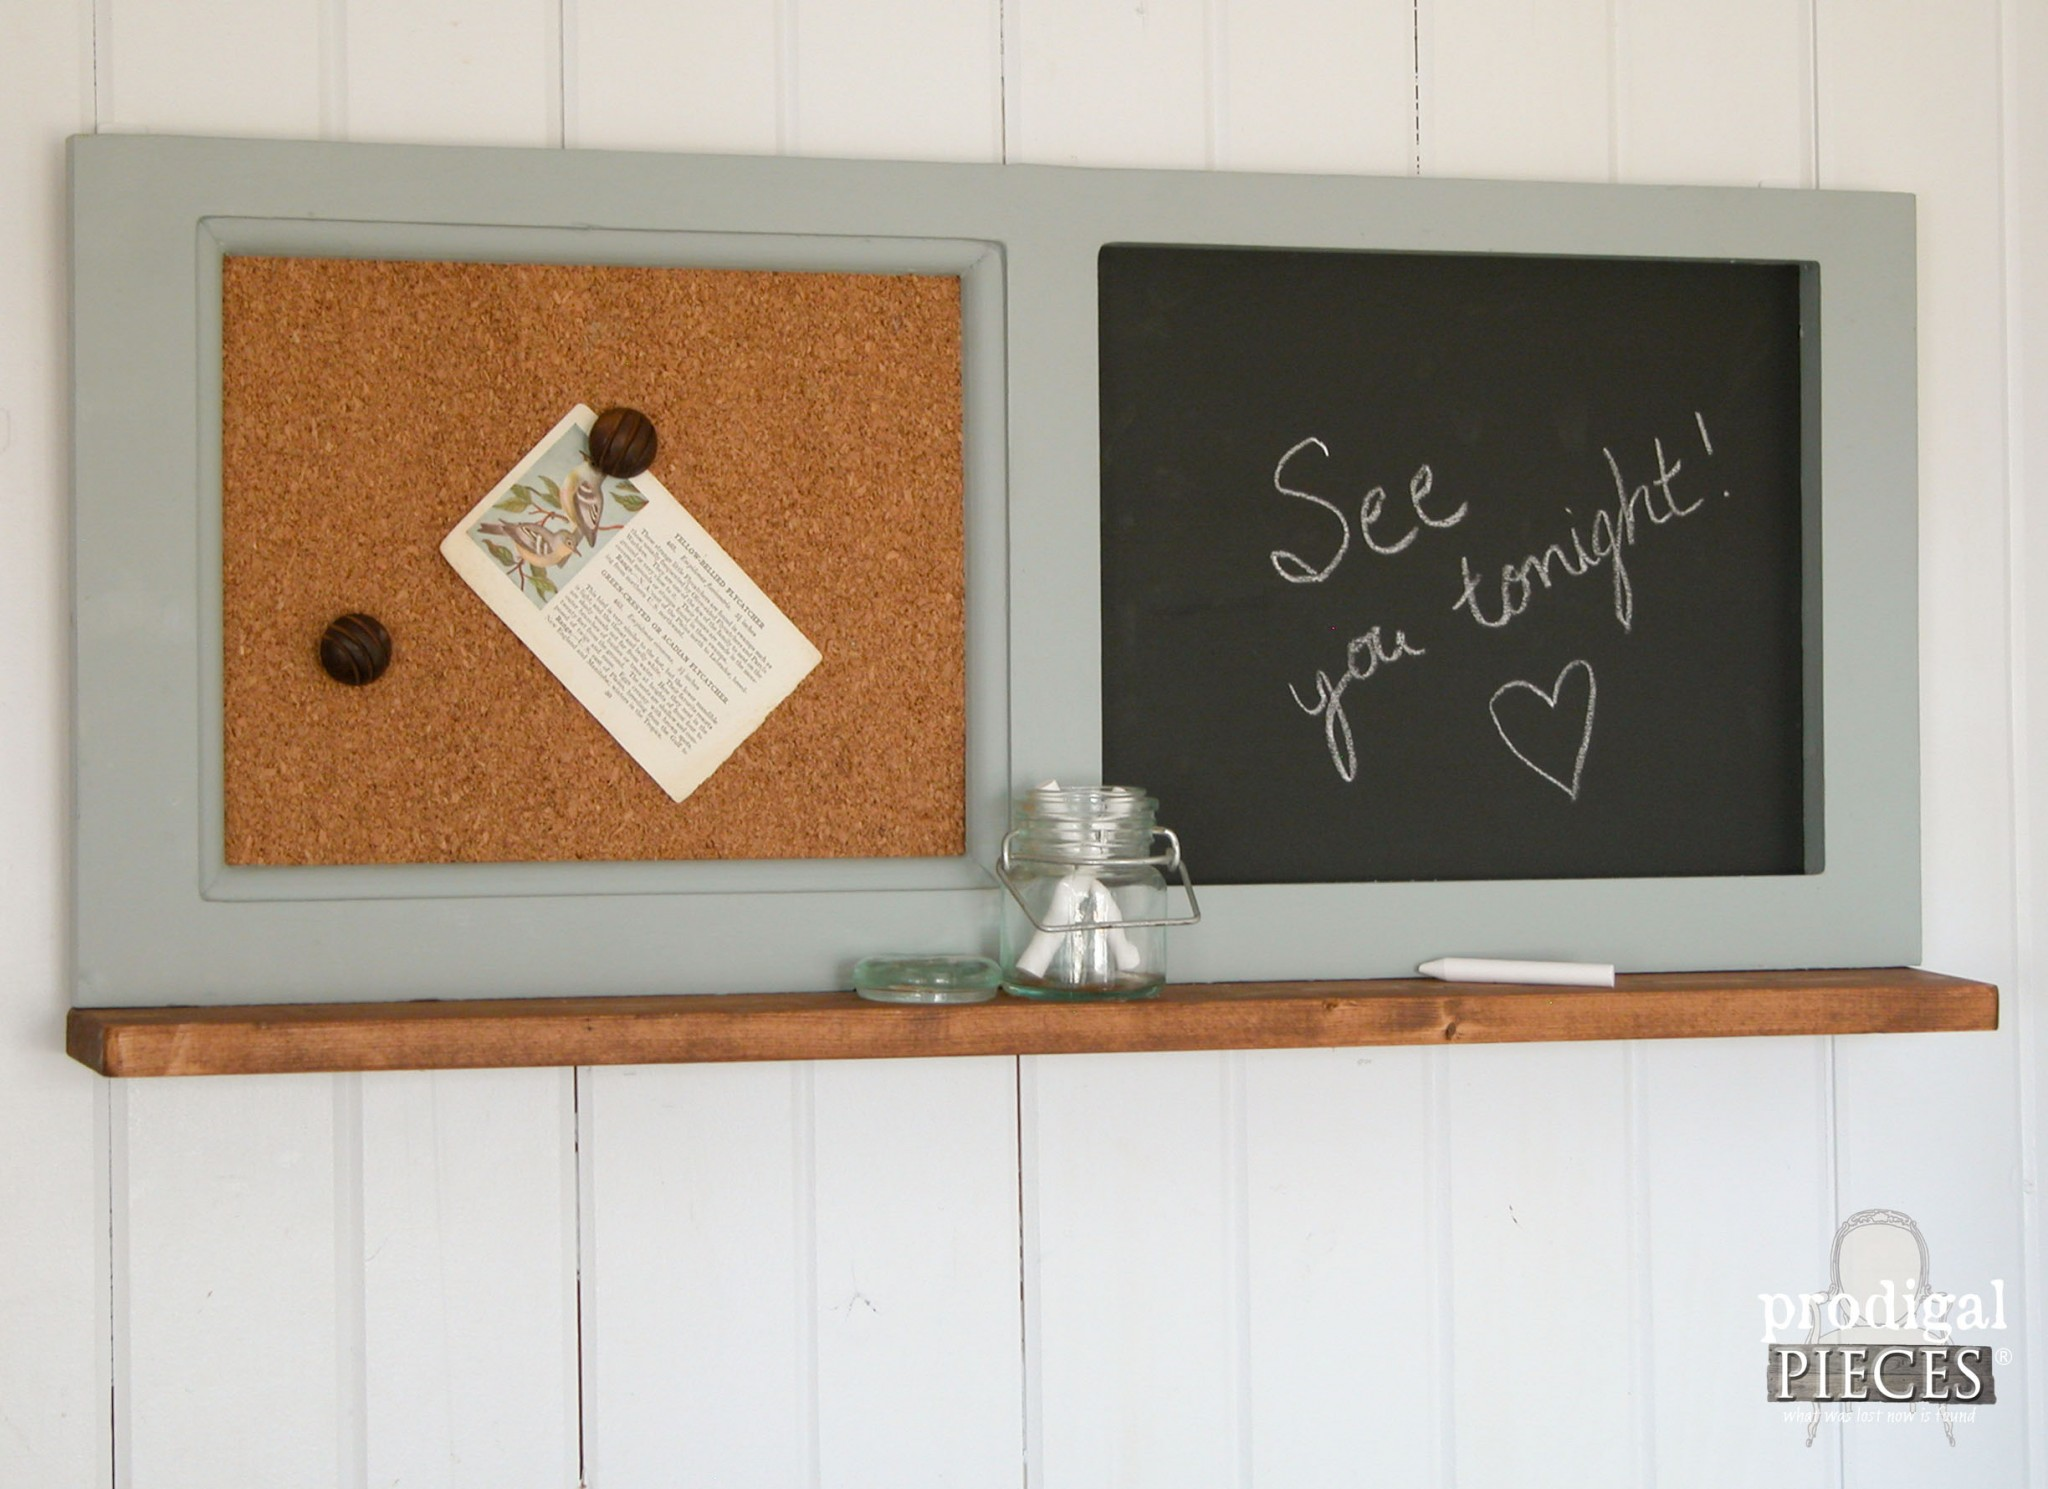 Message Center made from Repurposed Kitchen Cabinet by Prodigal Pieces | www.prodigalpieces.com